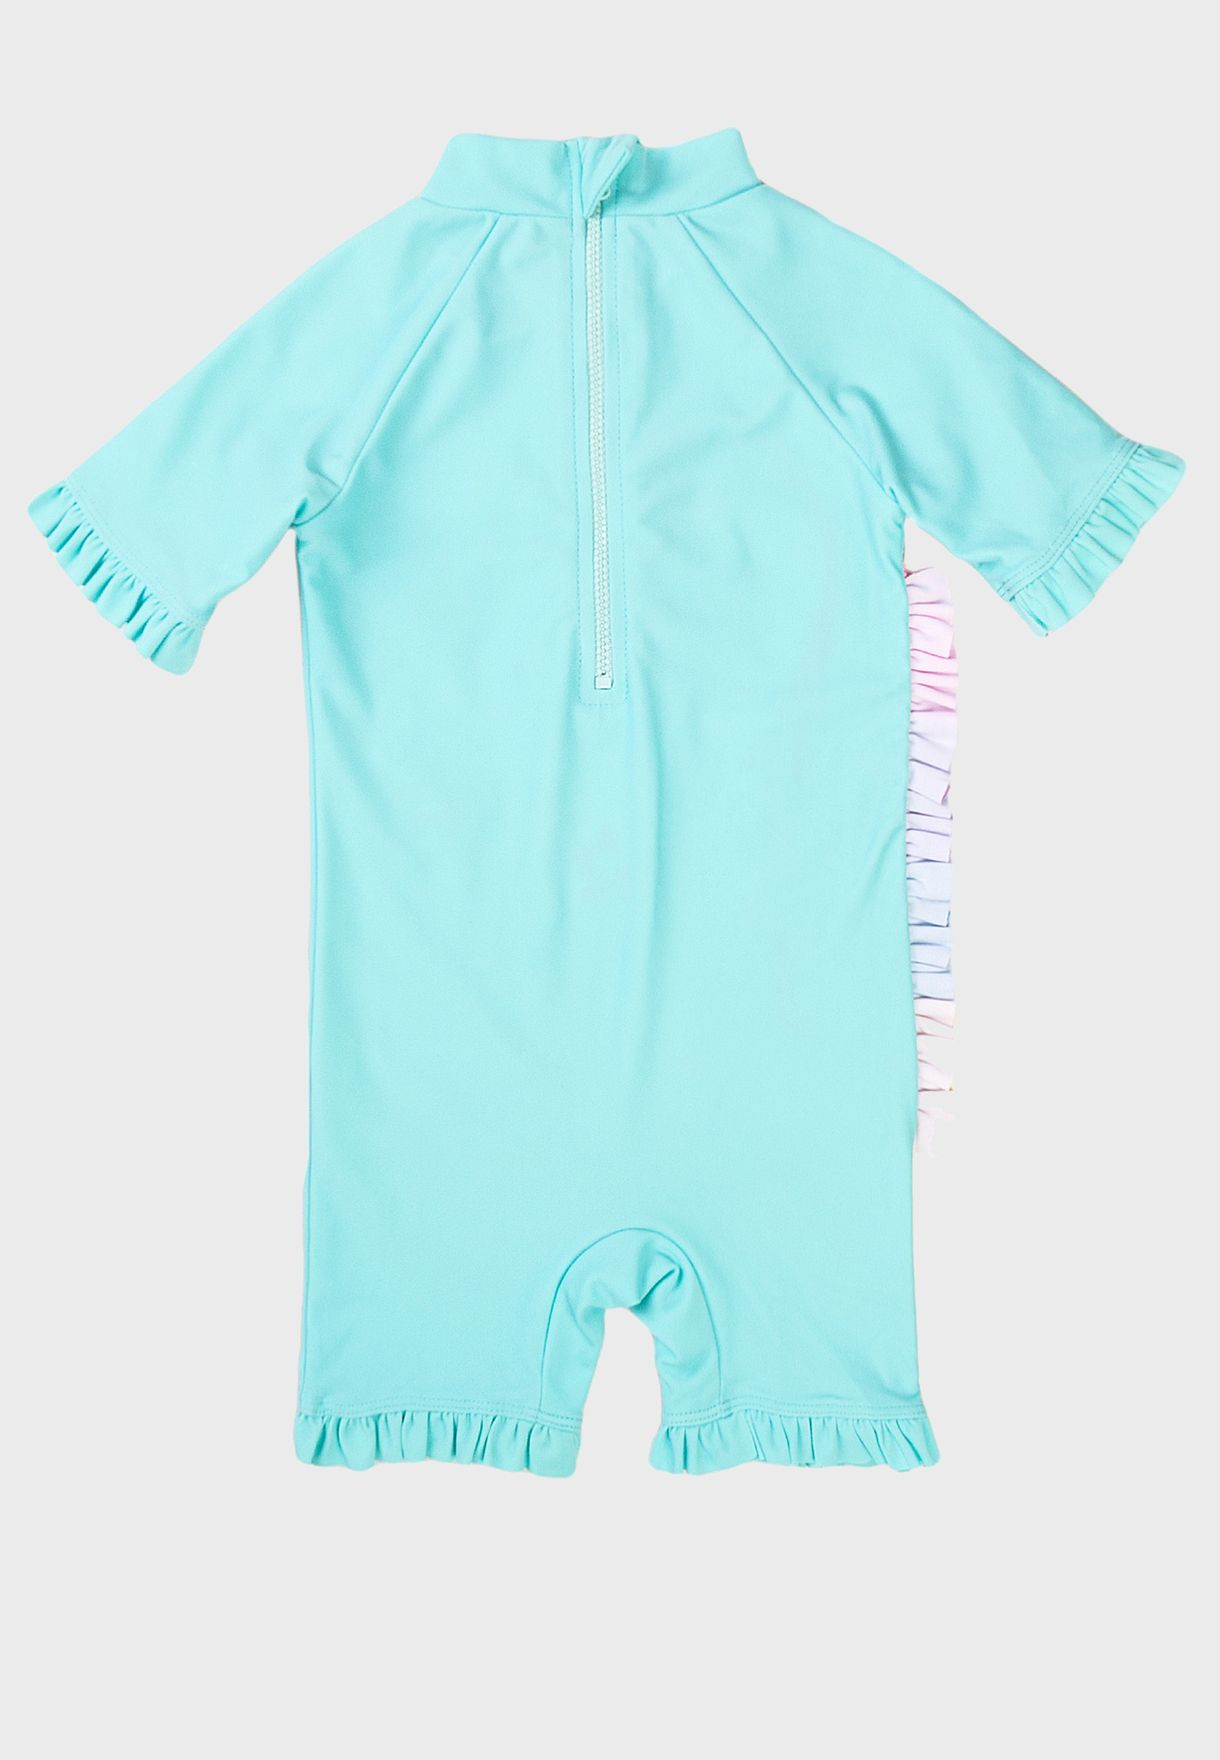 Infant Unicorn All In One Swimsuit